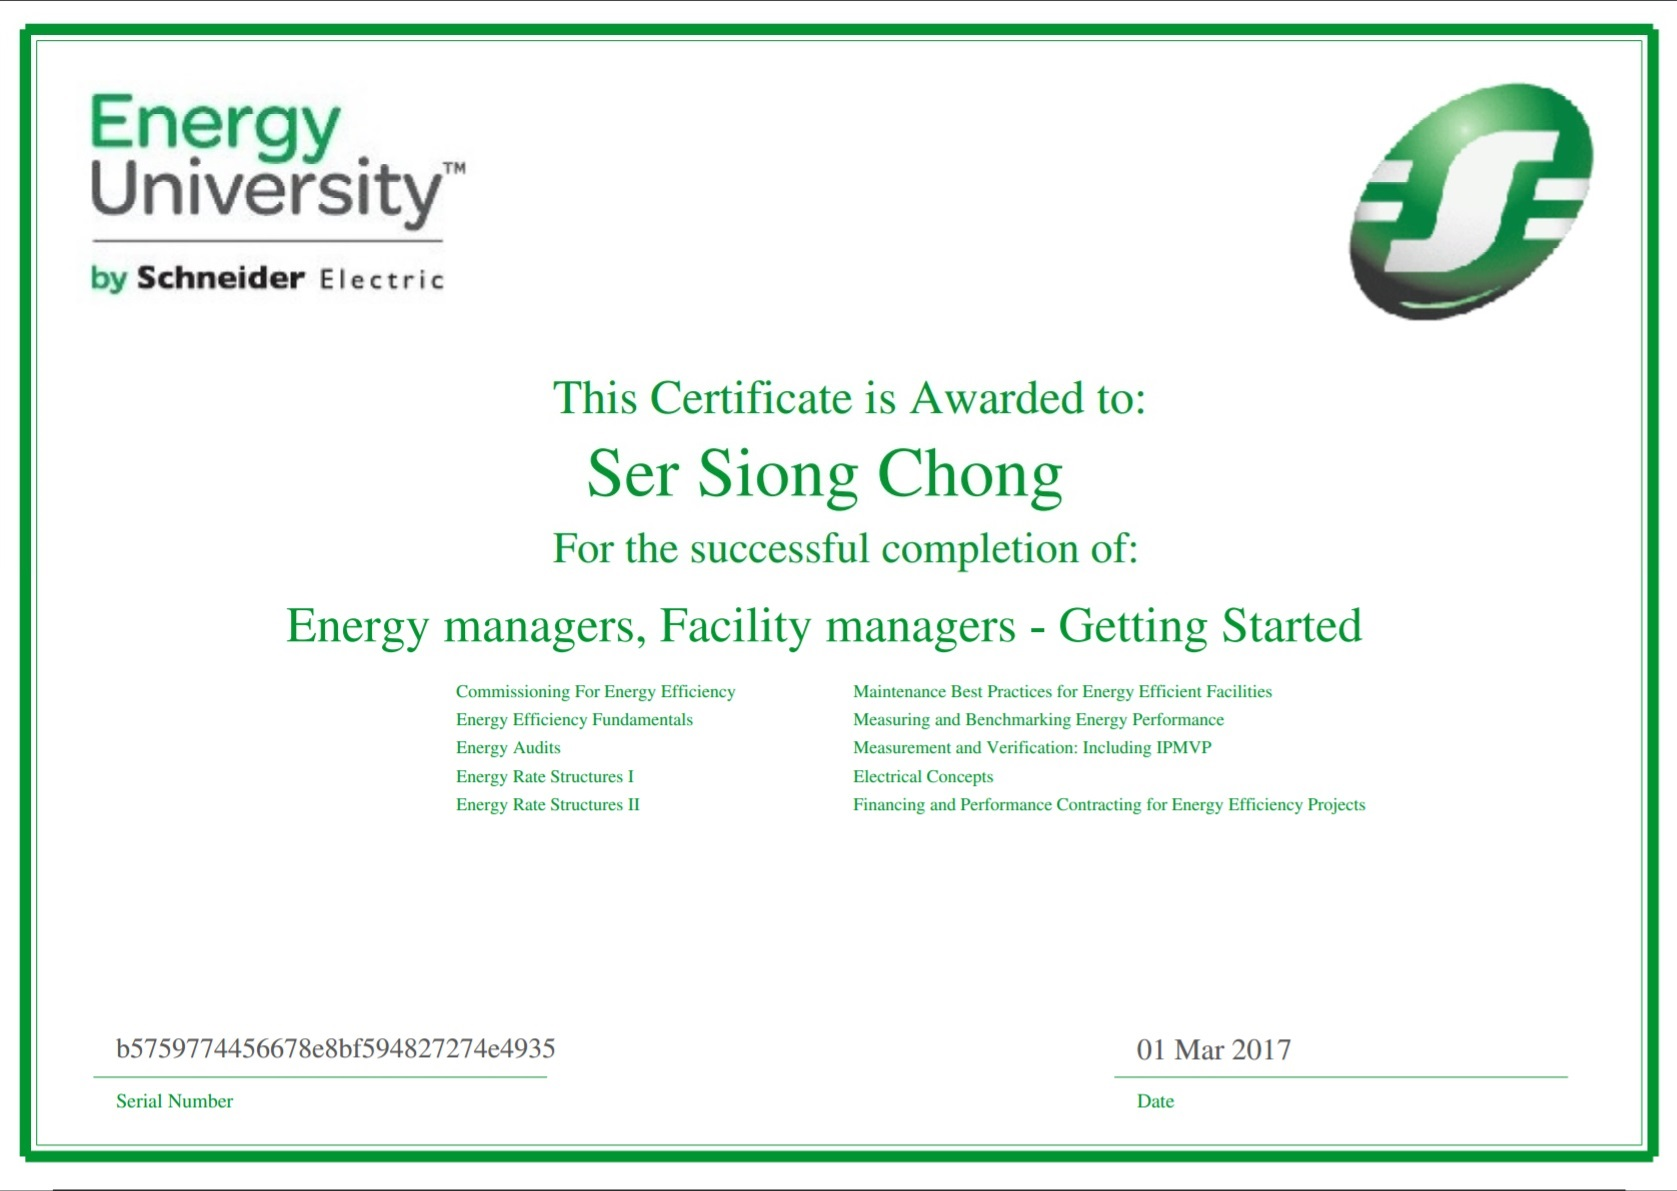 02_energy-manager-facility-manager-getting-started-01mar2017